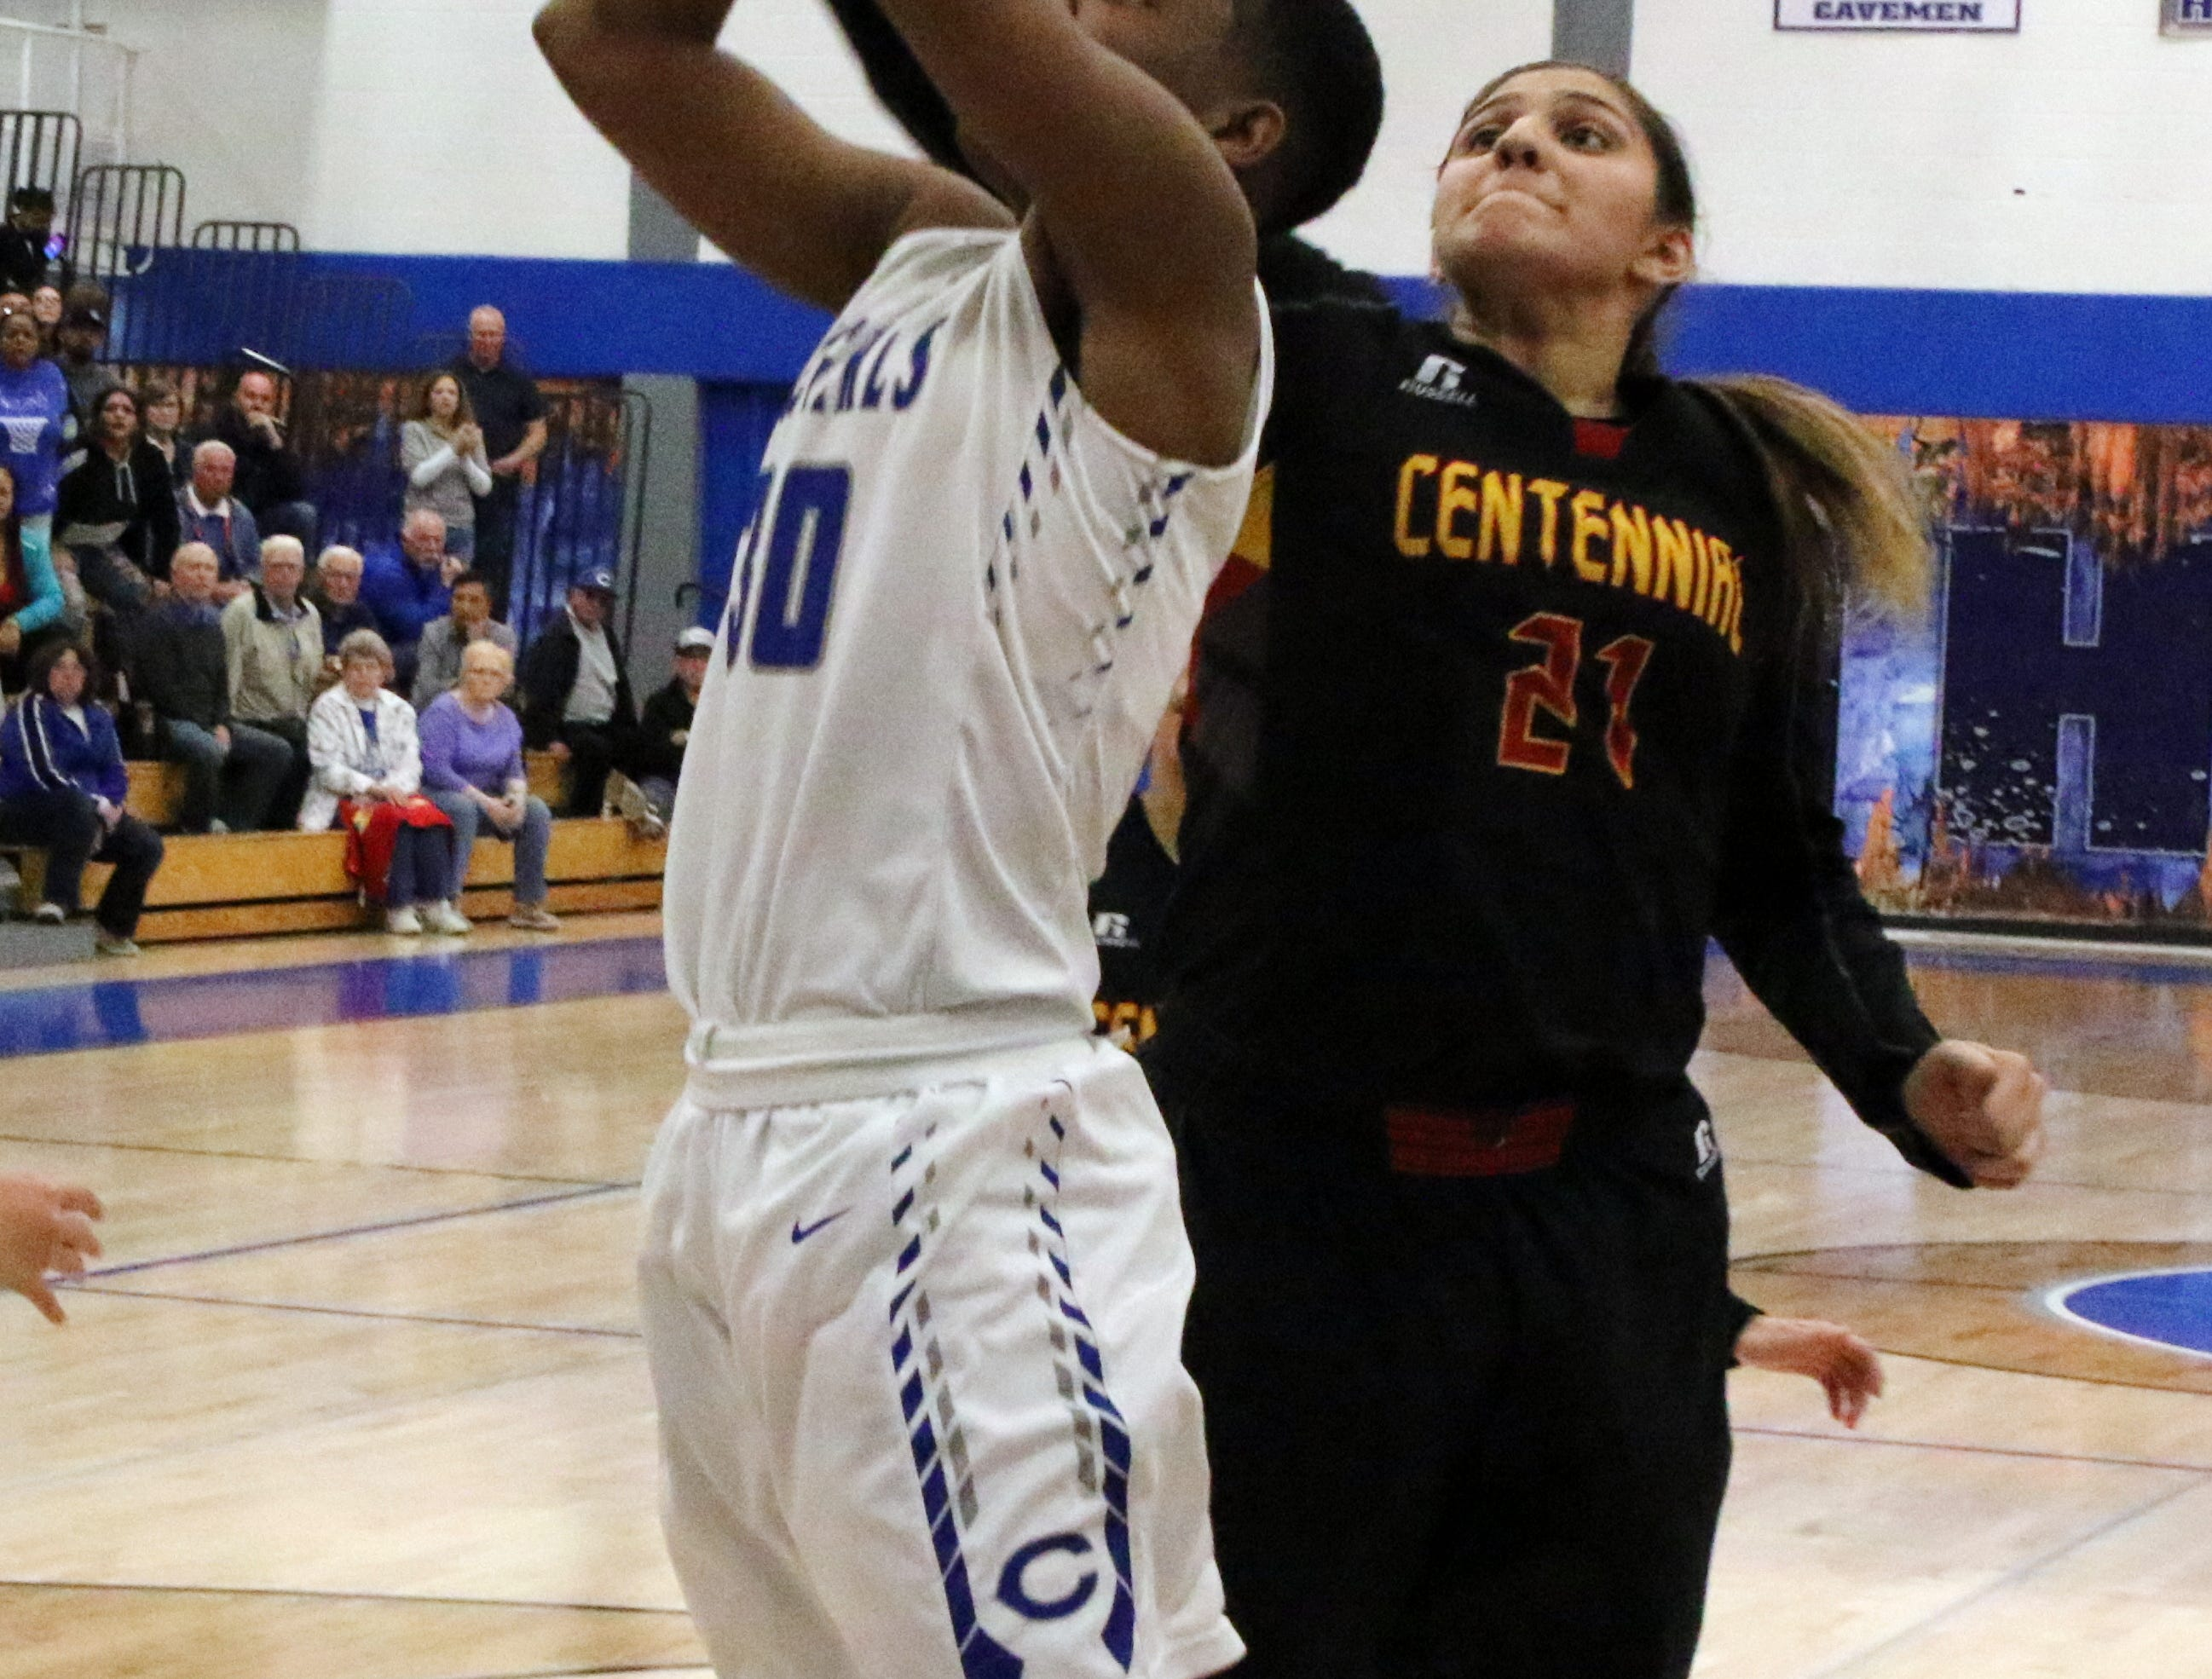 Carlsbad's Dayshaun Moore's shot is blocked by Centennial's Dianne Hefner in the fourth quarter of Friday's game.